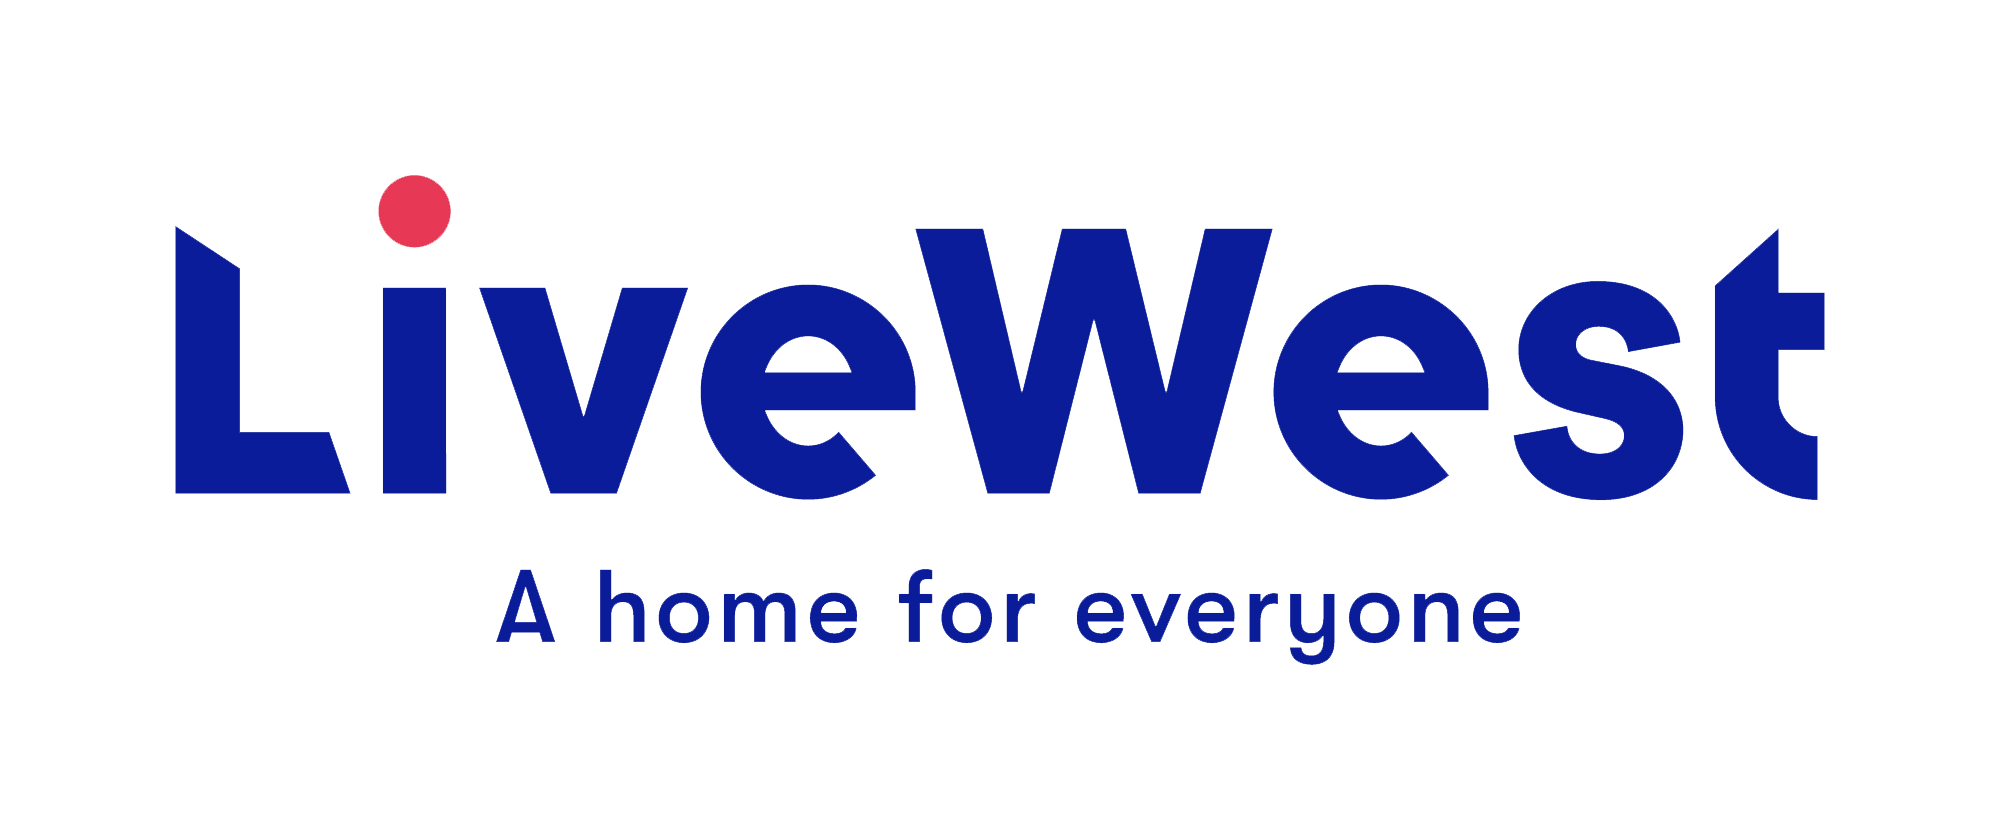 LiveWest-HDlogo-clear